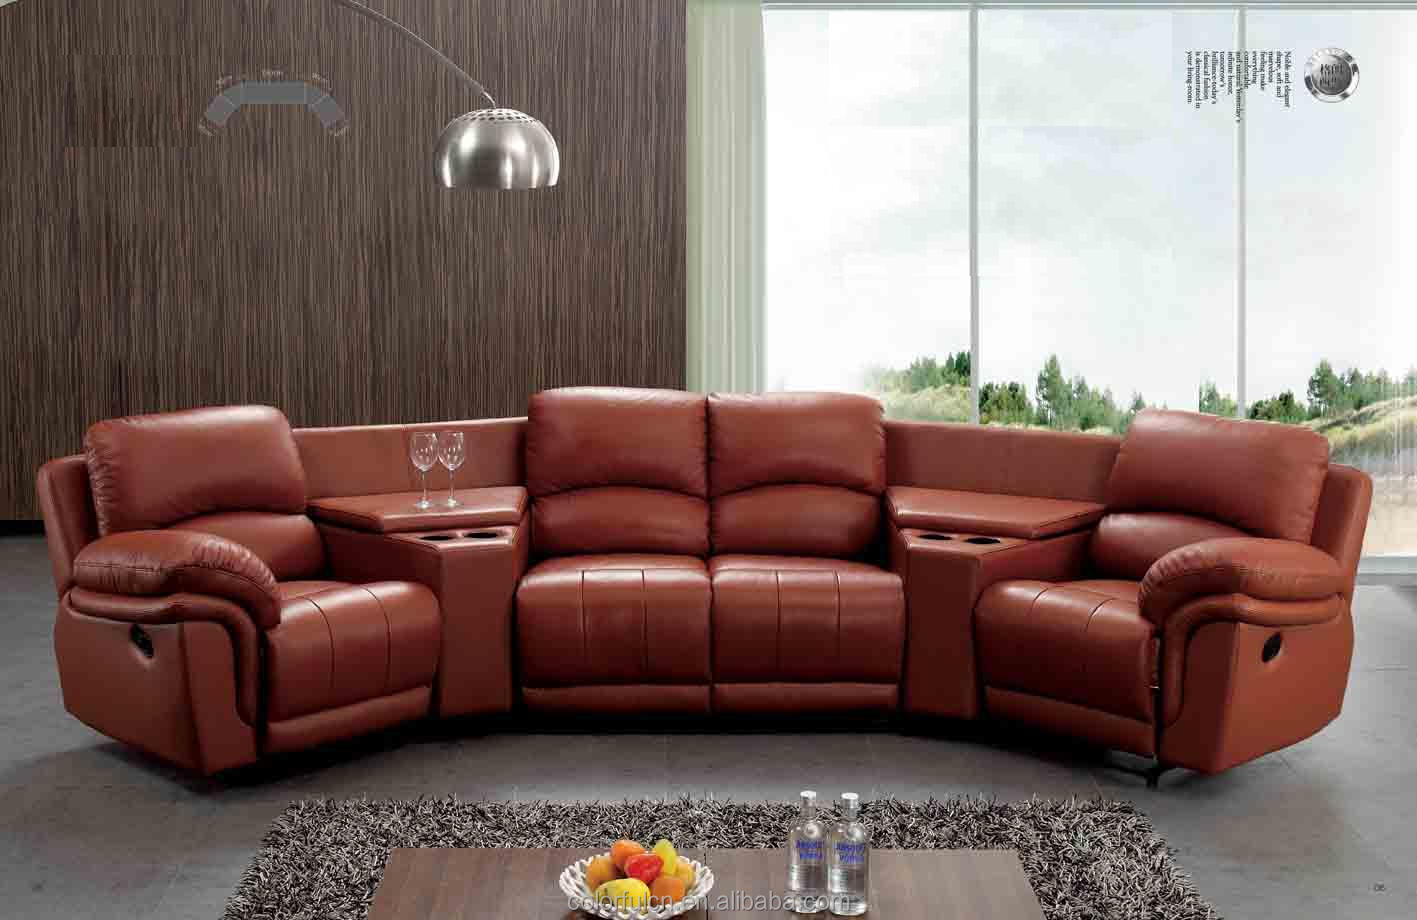 leather round sofas manufacturers elegant sofa set kijiji semi circle magnificent lounge couch